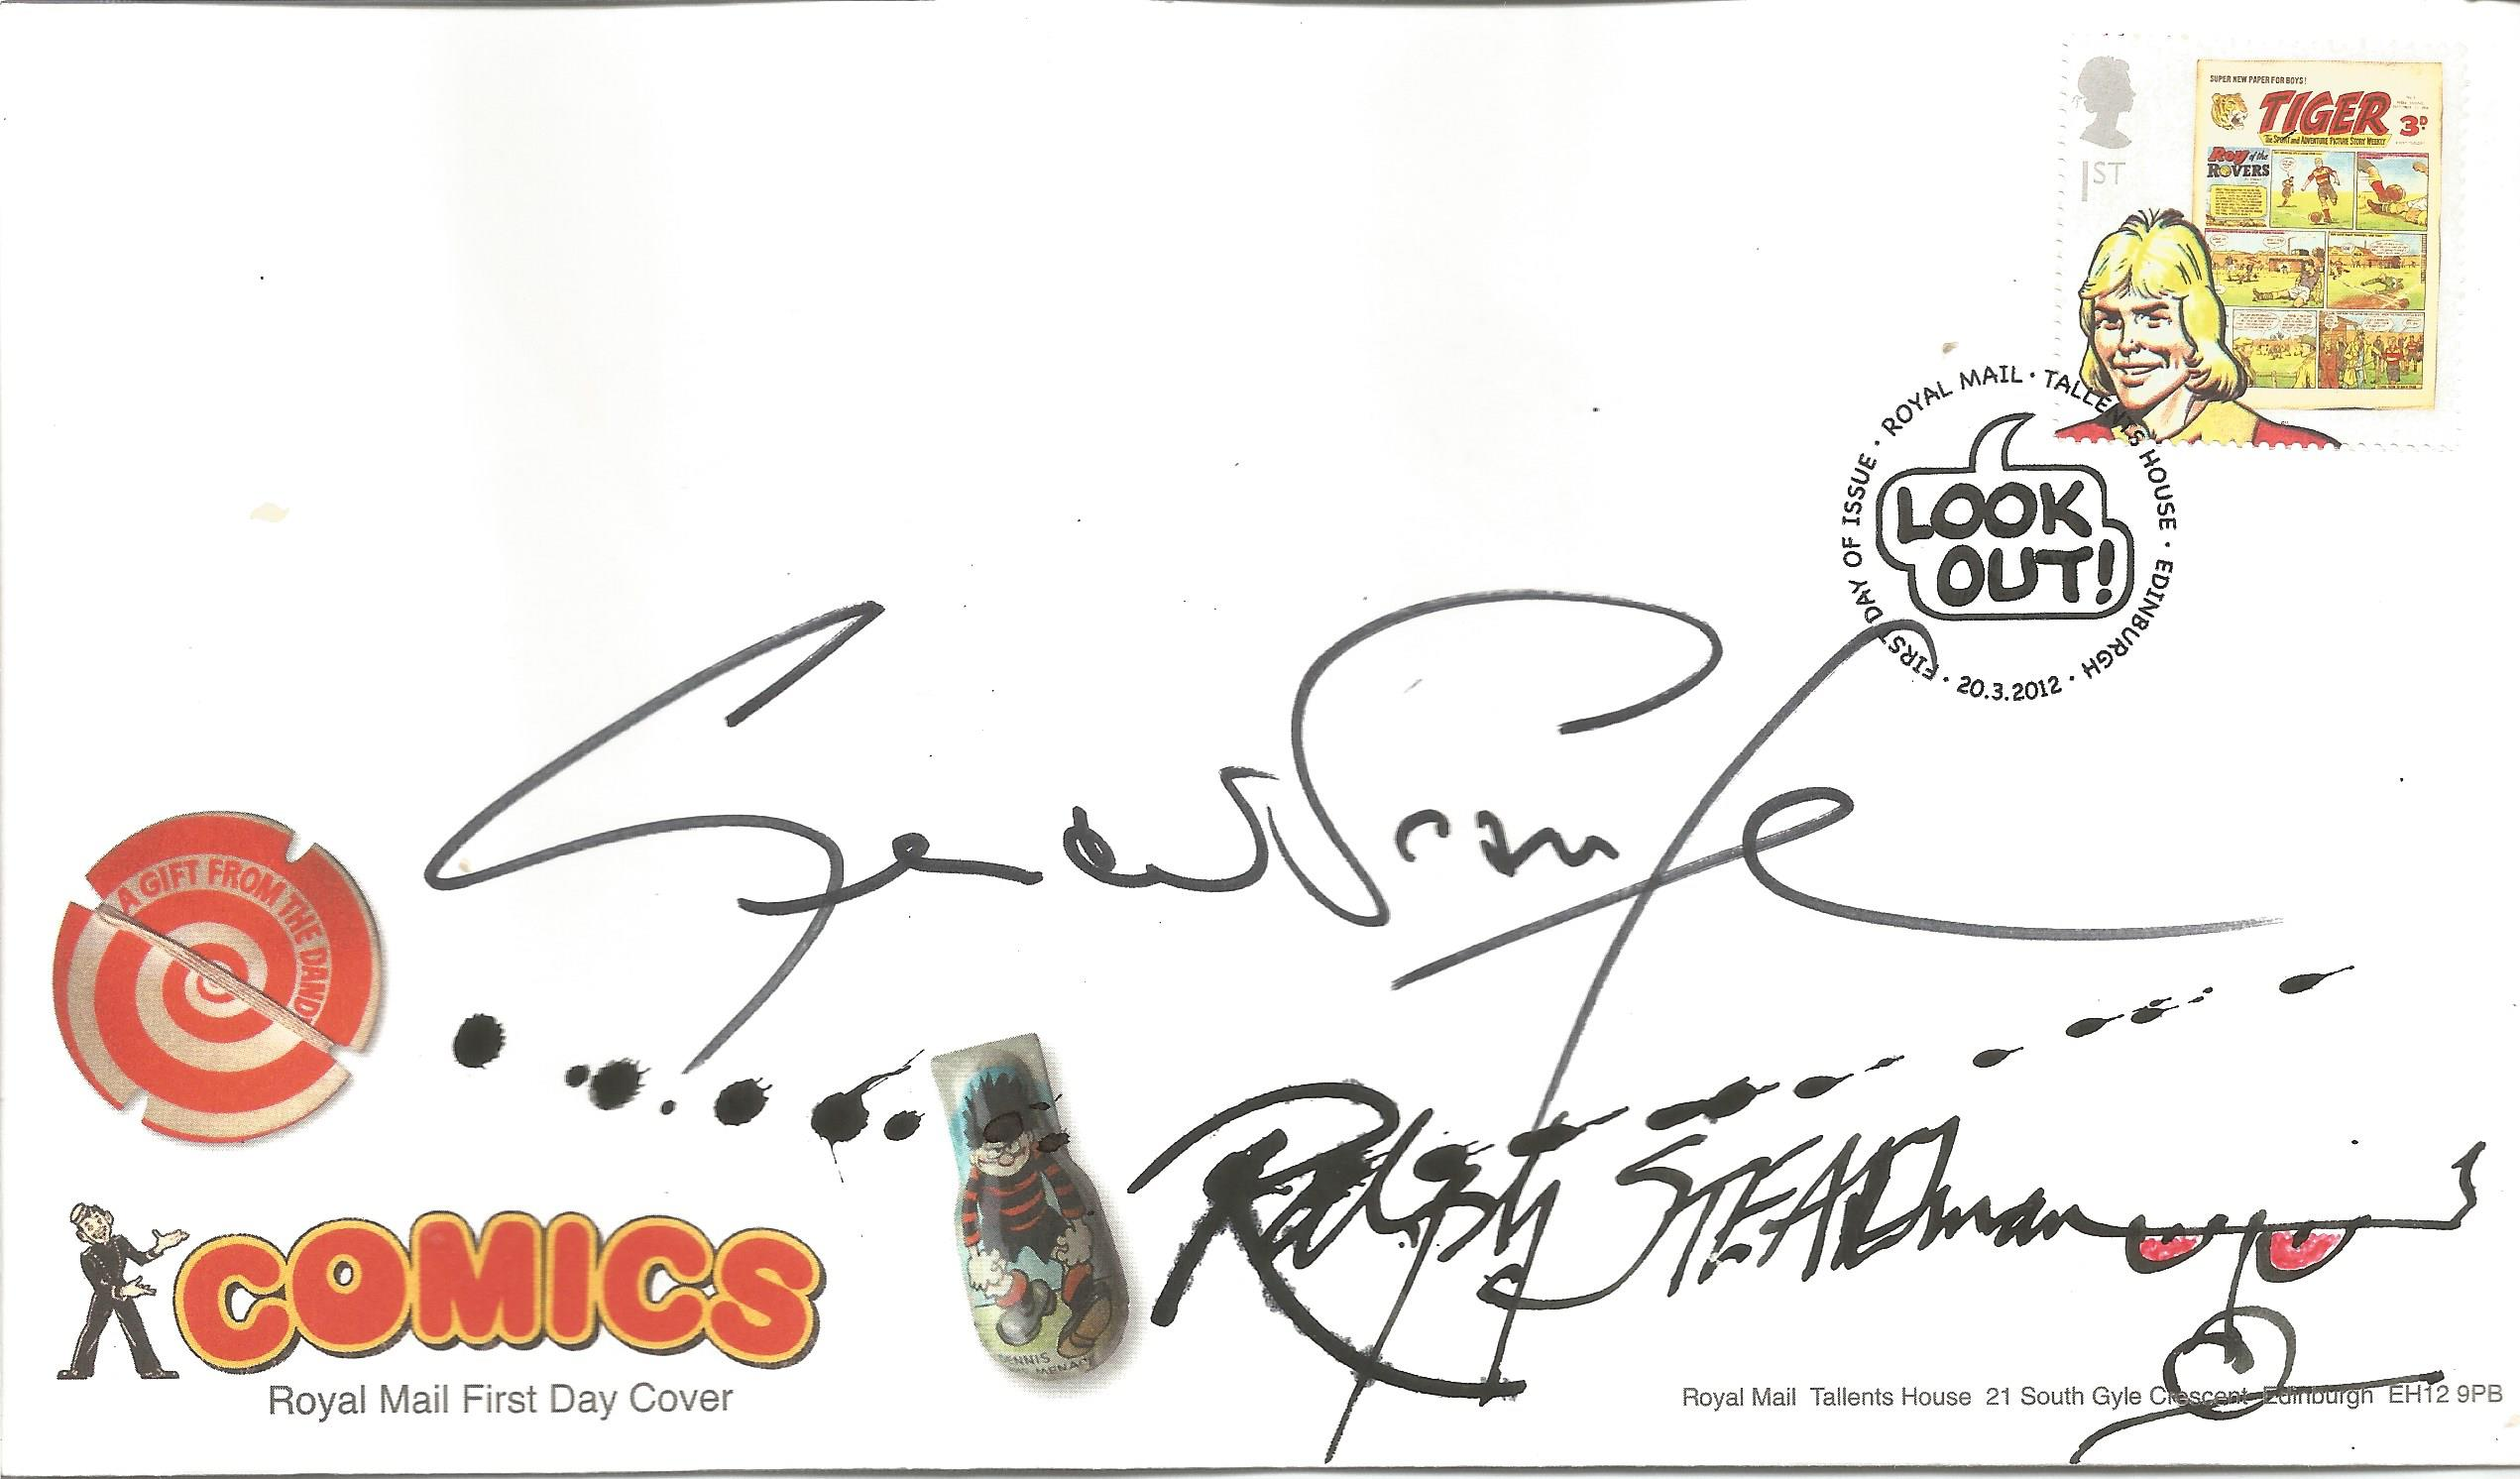 FDC for Comics and signed by Gerald Scarfe, English cartoonist and illustrator. Post marked 2nd